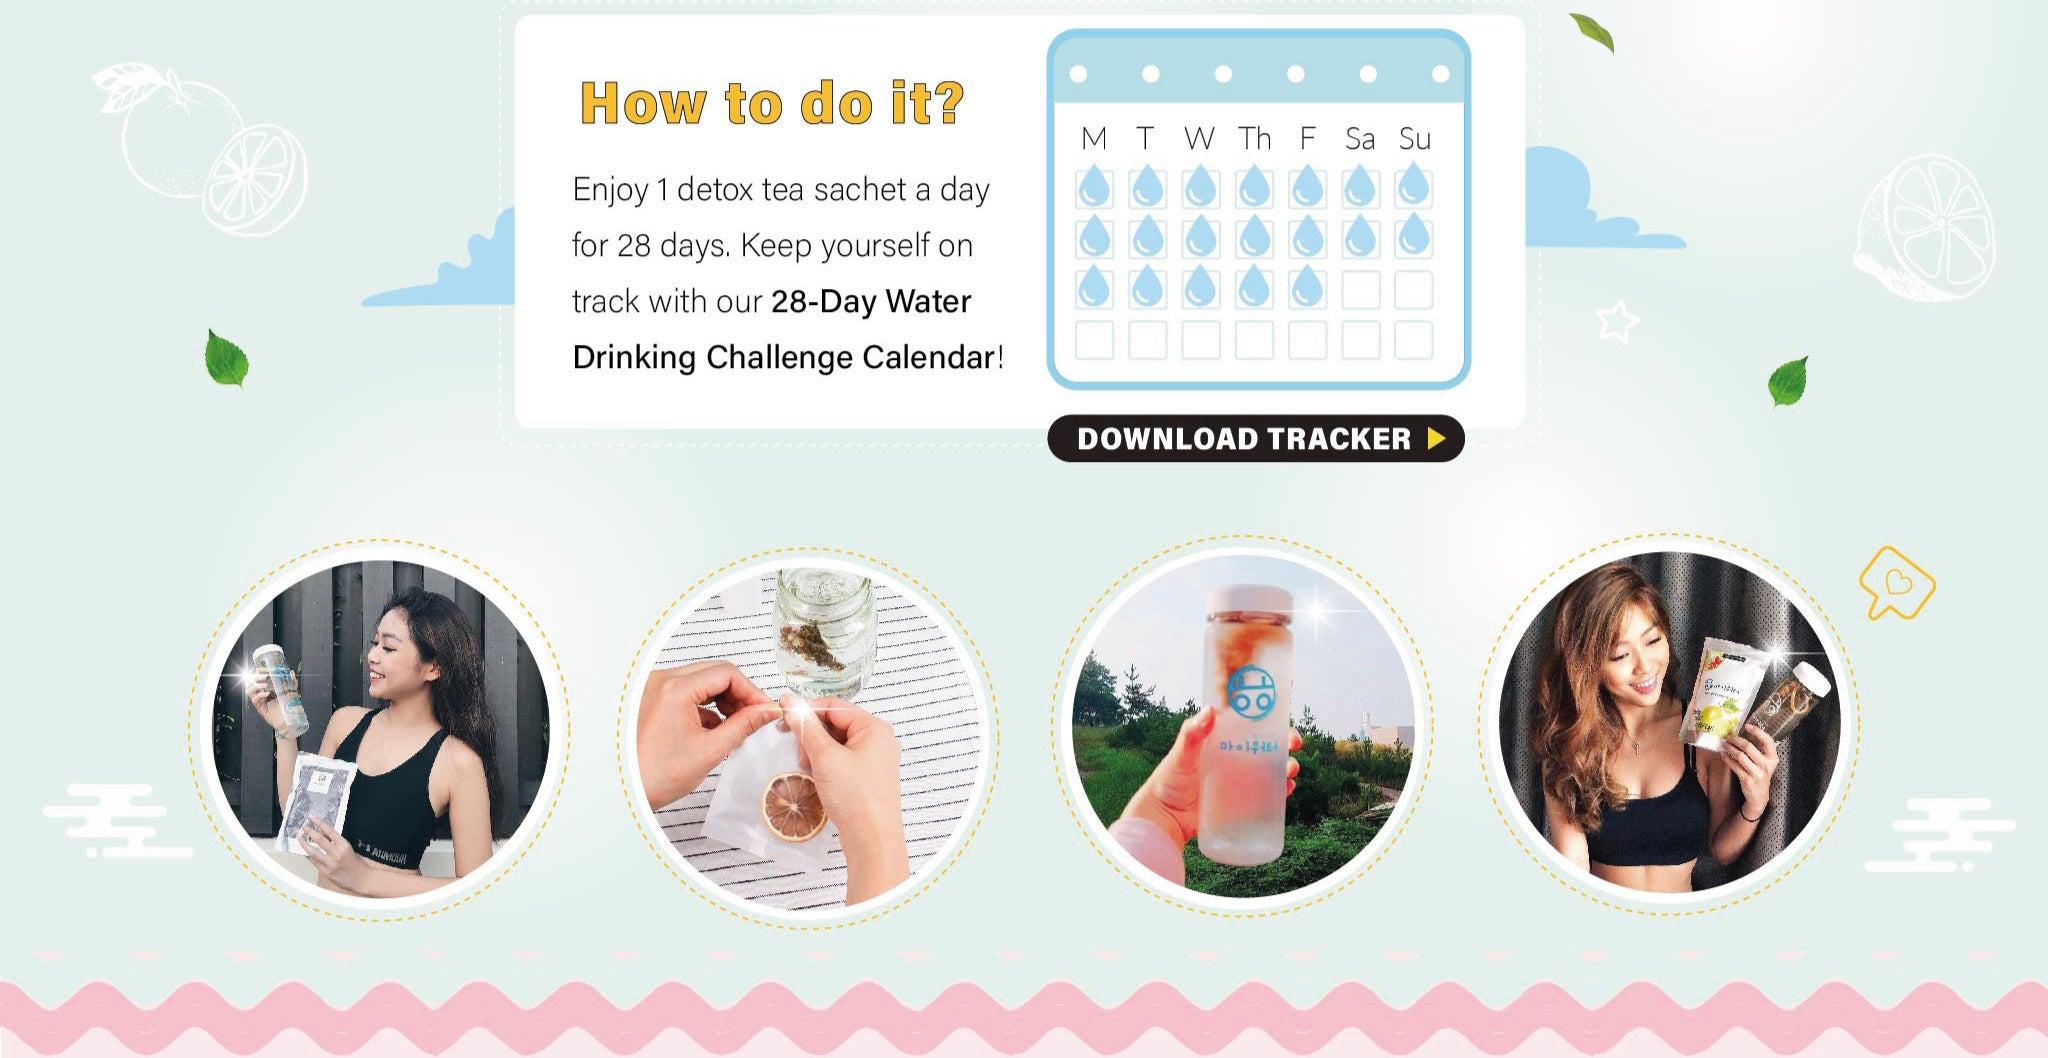 Download the Calender to keep track of your water intake today!